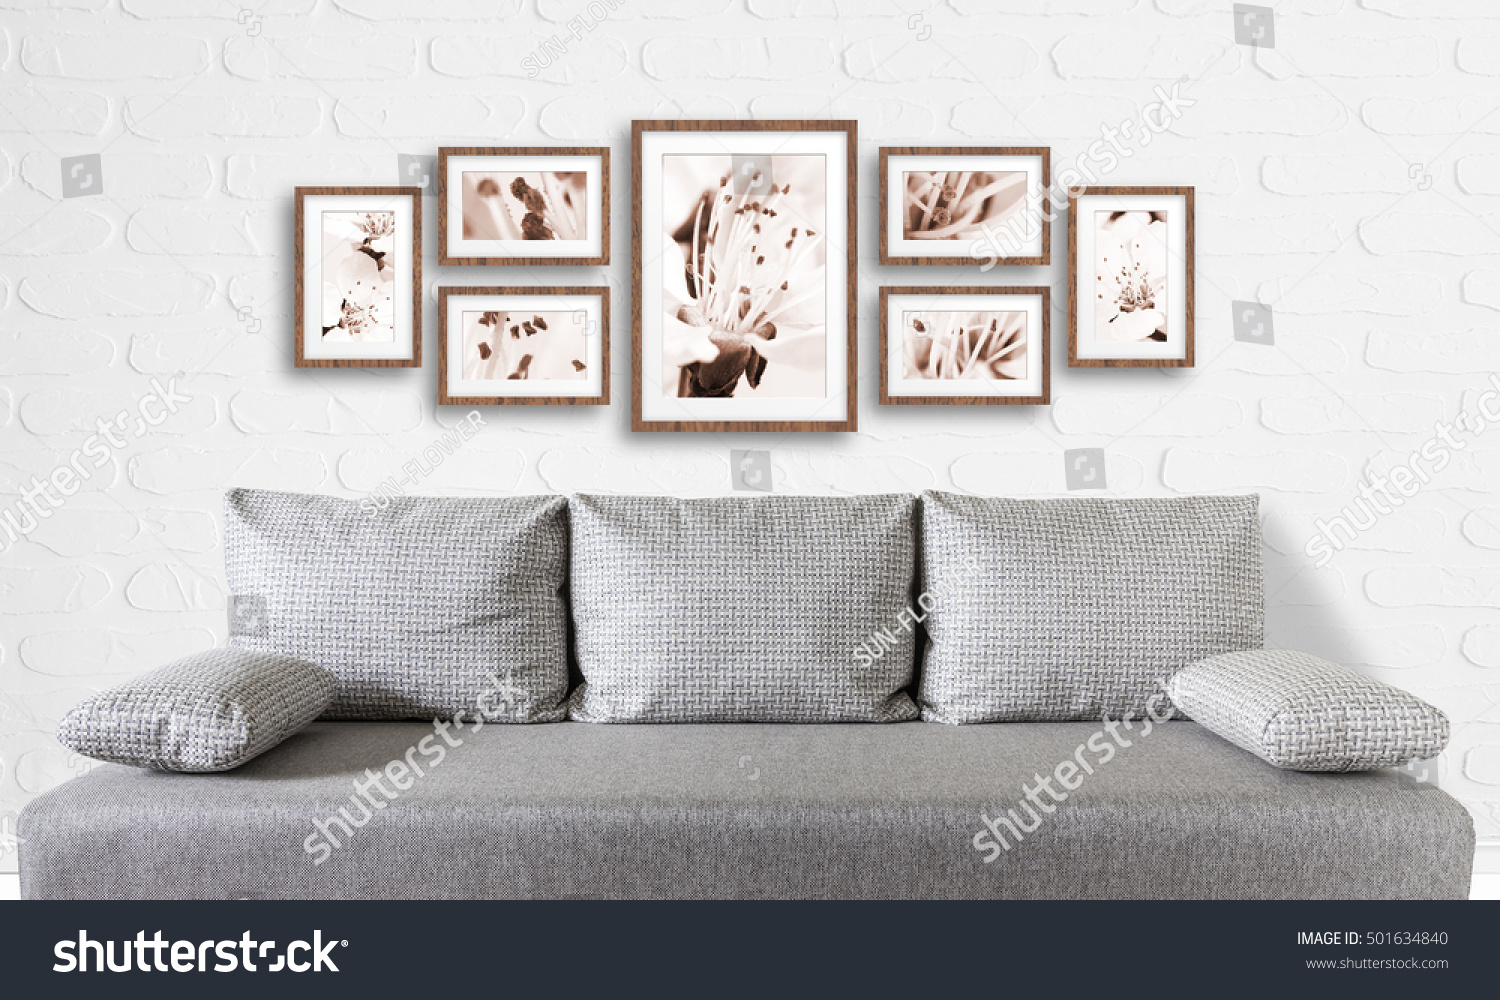 Frames Collage Floral Posters On Bricks Stock Photo (Edit Now ...